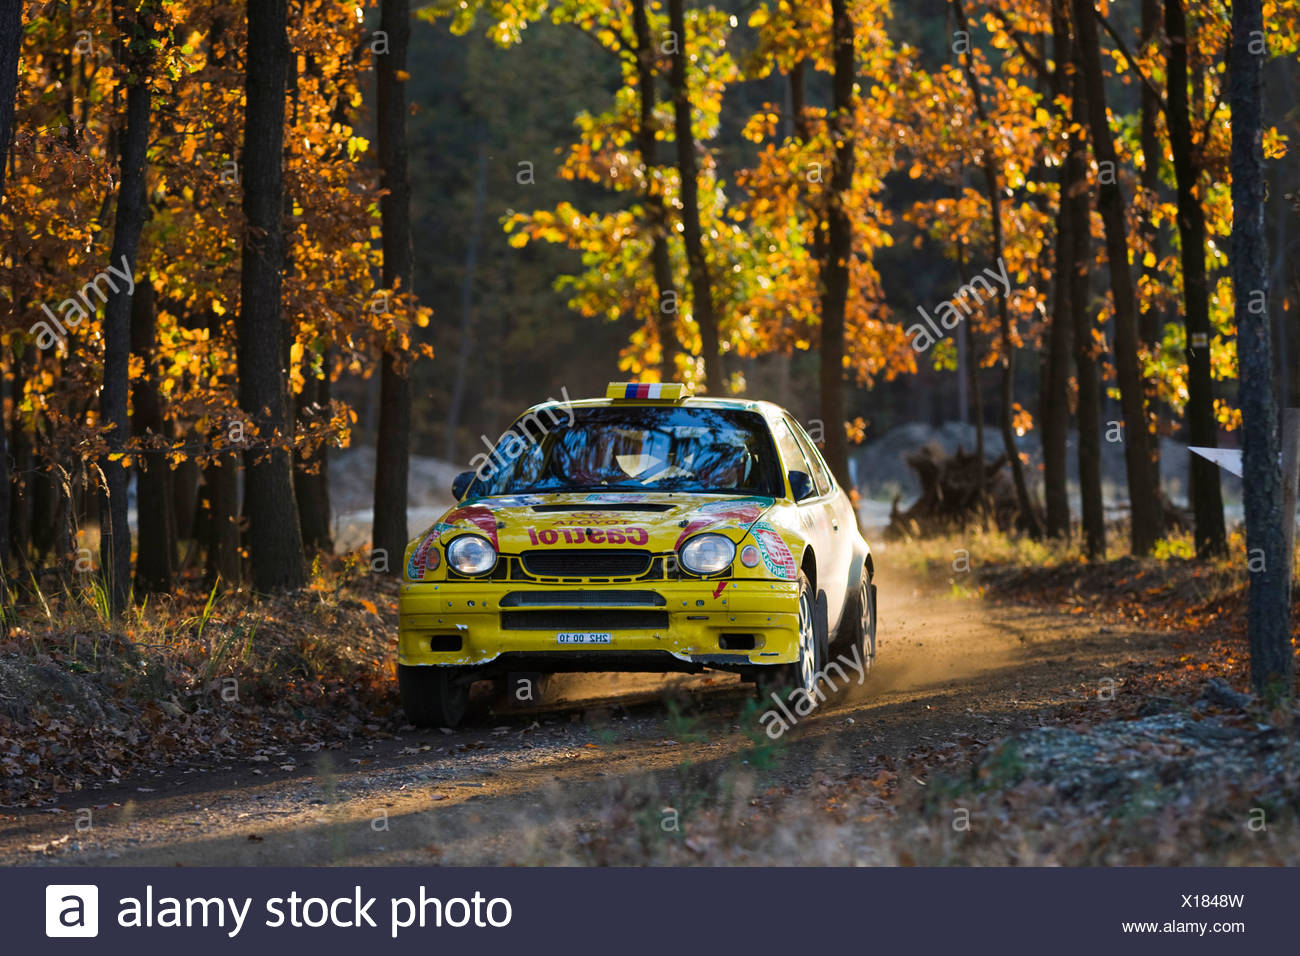 Toyota Rally Cars Stock Photos & Toyota Rally Cars Stock Images - Alamy